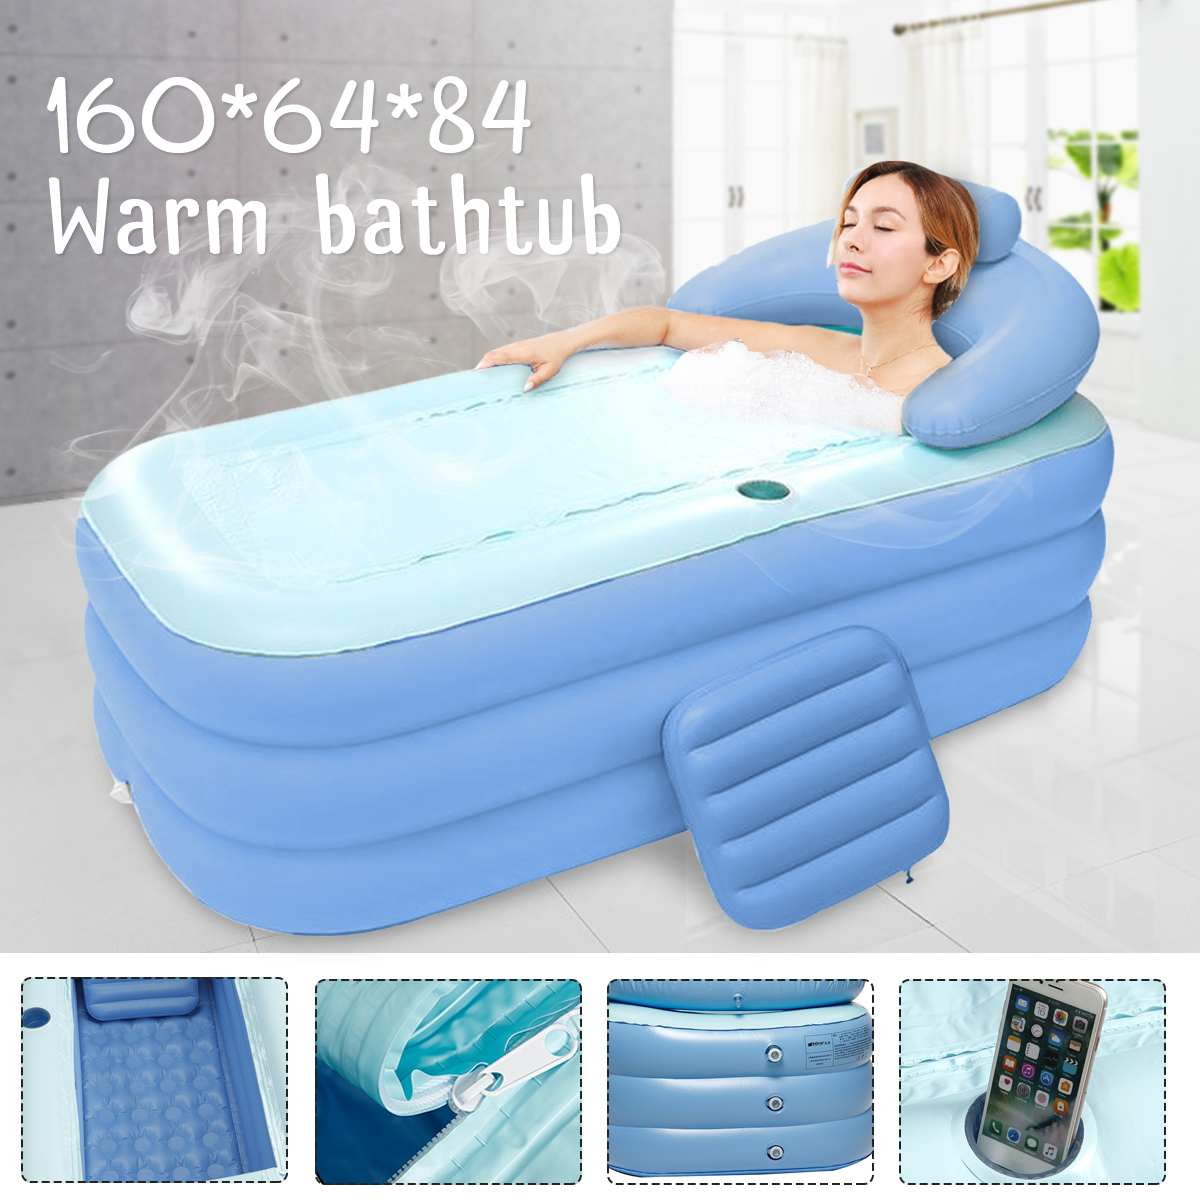 160x64x84cm Large Size Inflatable Bath Bathtub SPA PVC Folding Portable For Adults With Air Pump Household Inflatable Tub Blue